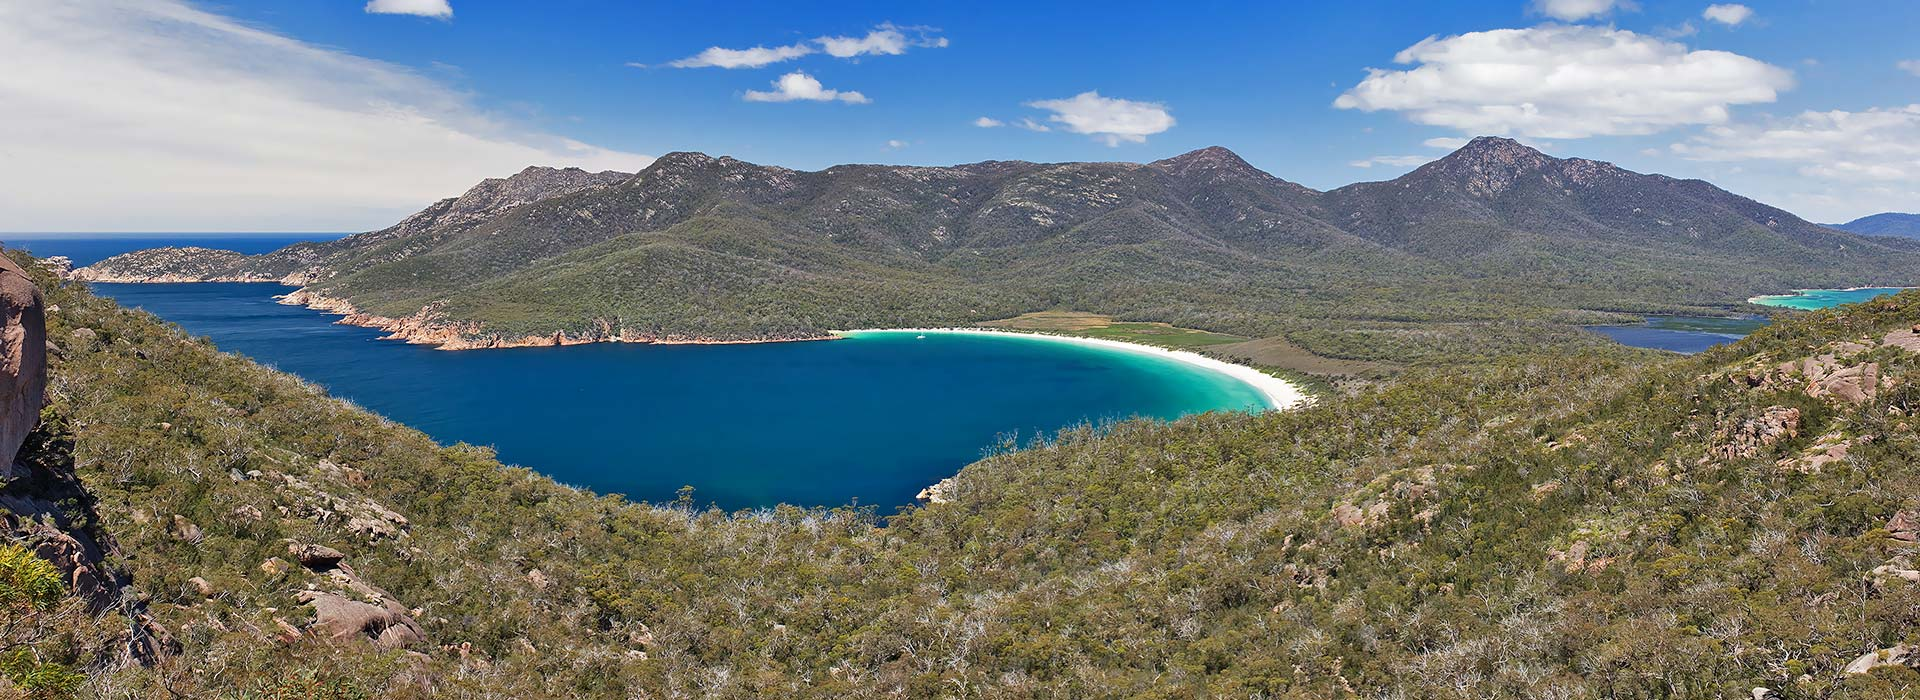 take a stroll   @ Wineglass Bay